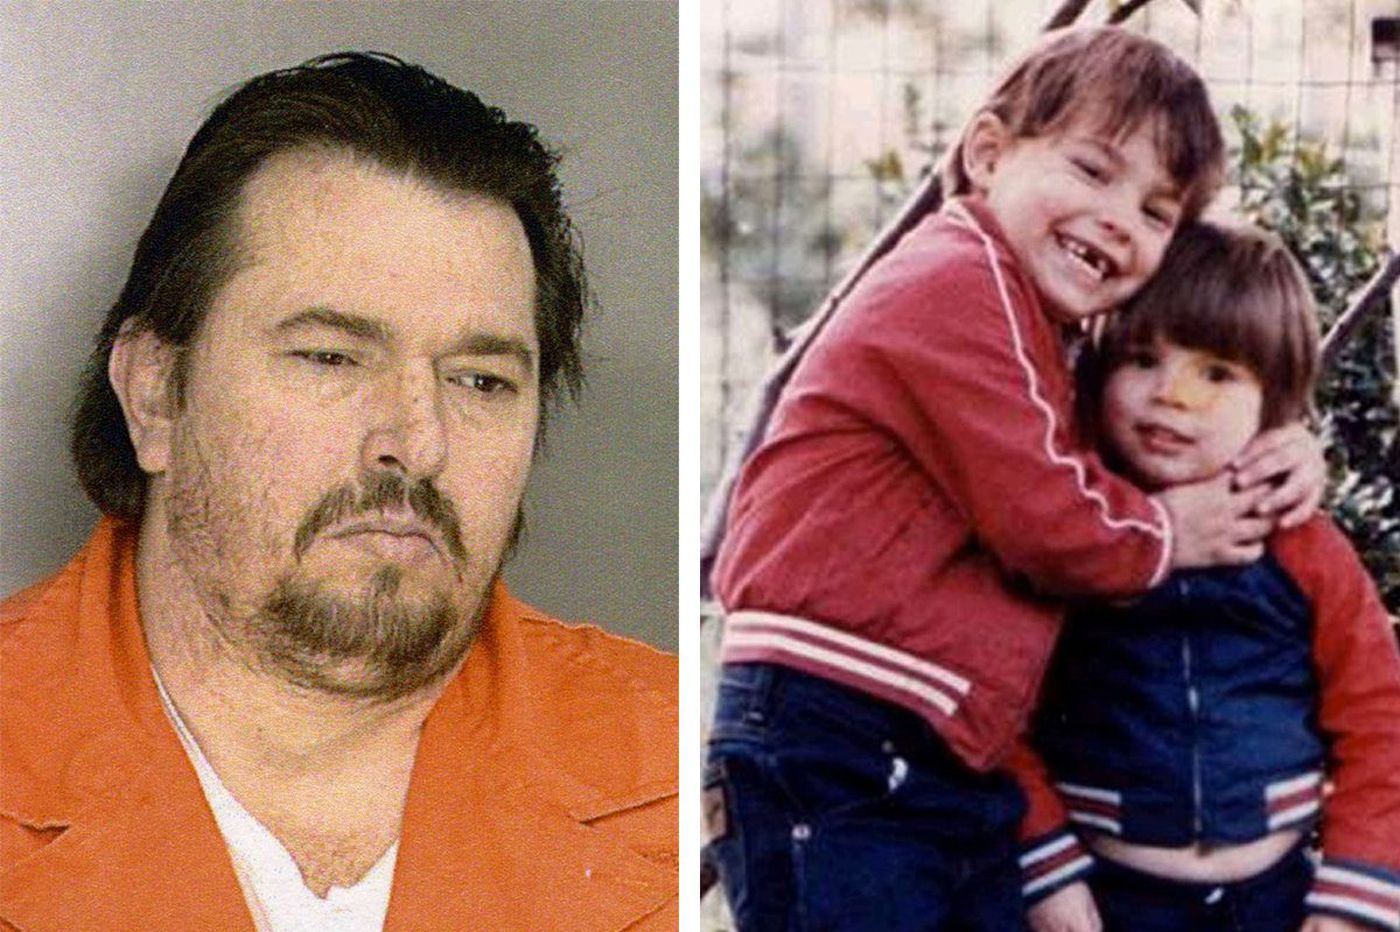 3rd trial begins for Daniel Dougherty, twice convicted of 1985 arson deaths of his 2 young sons